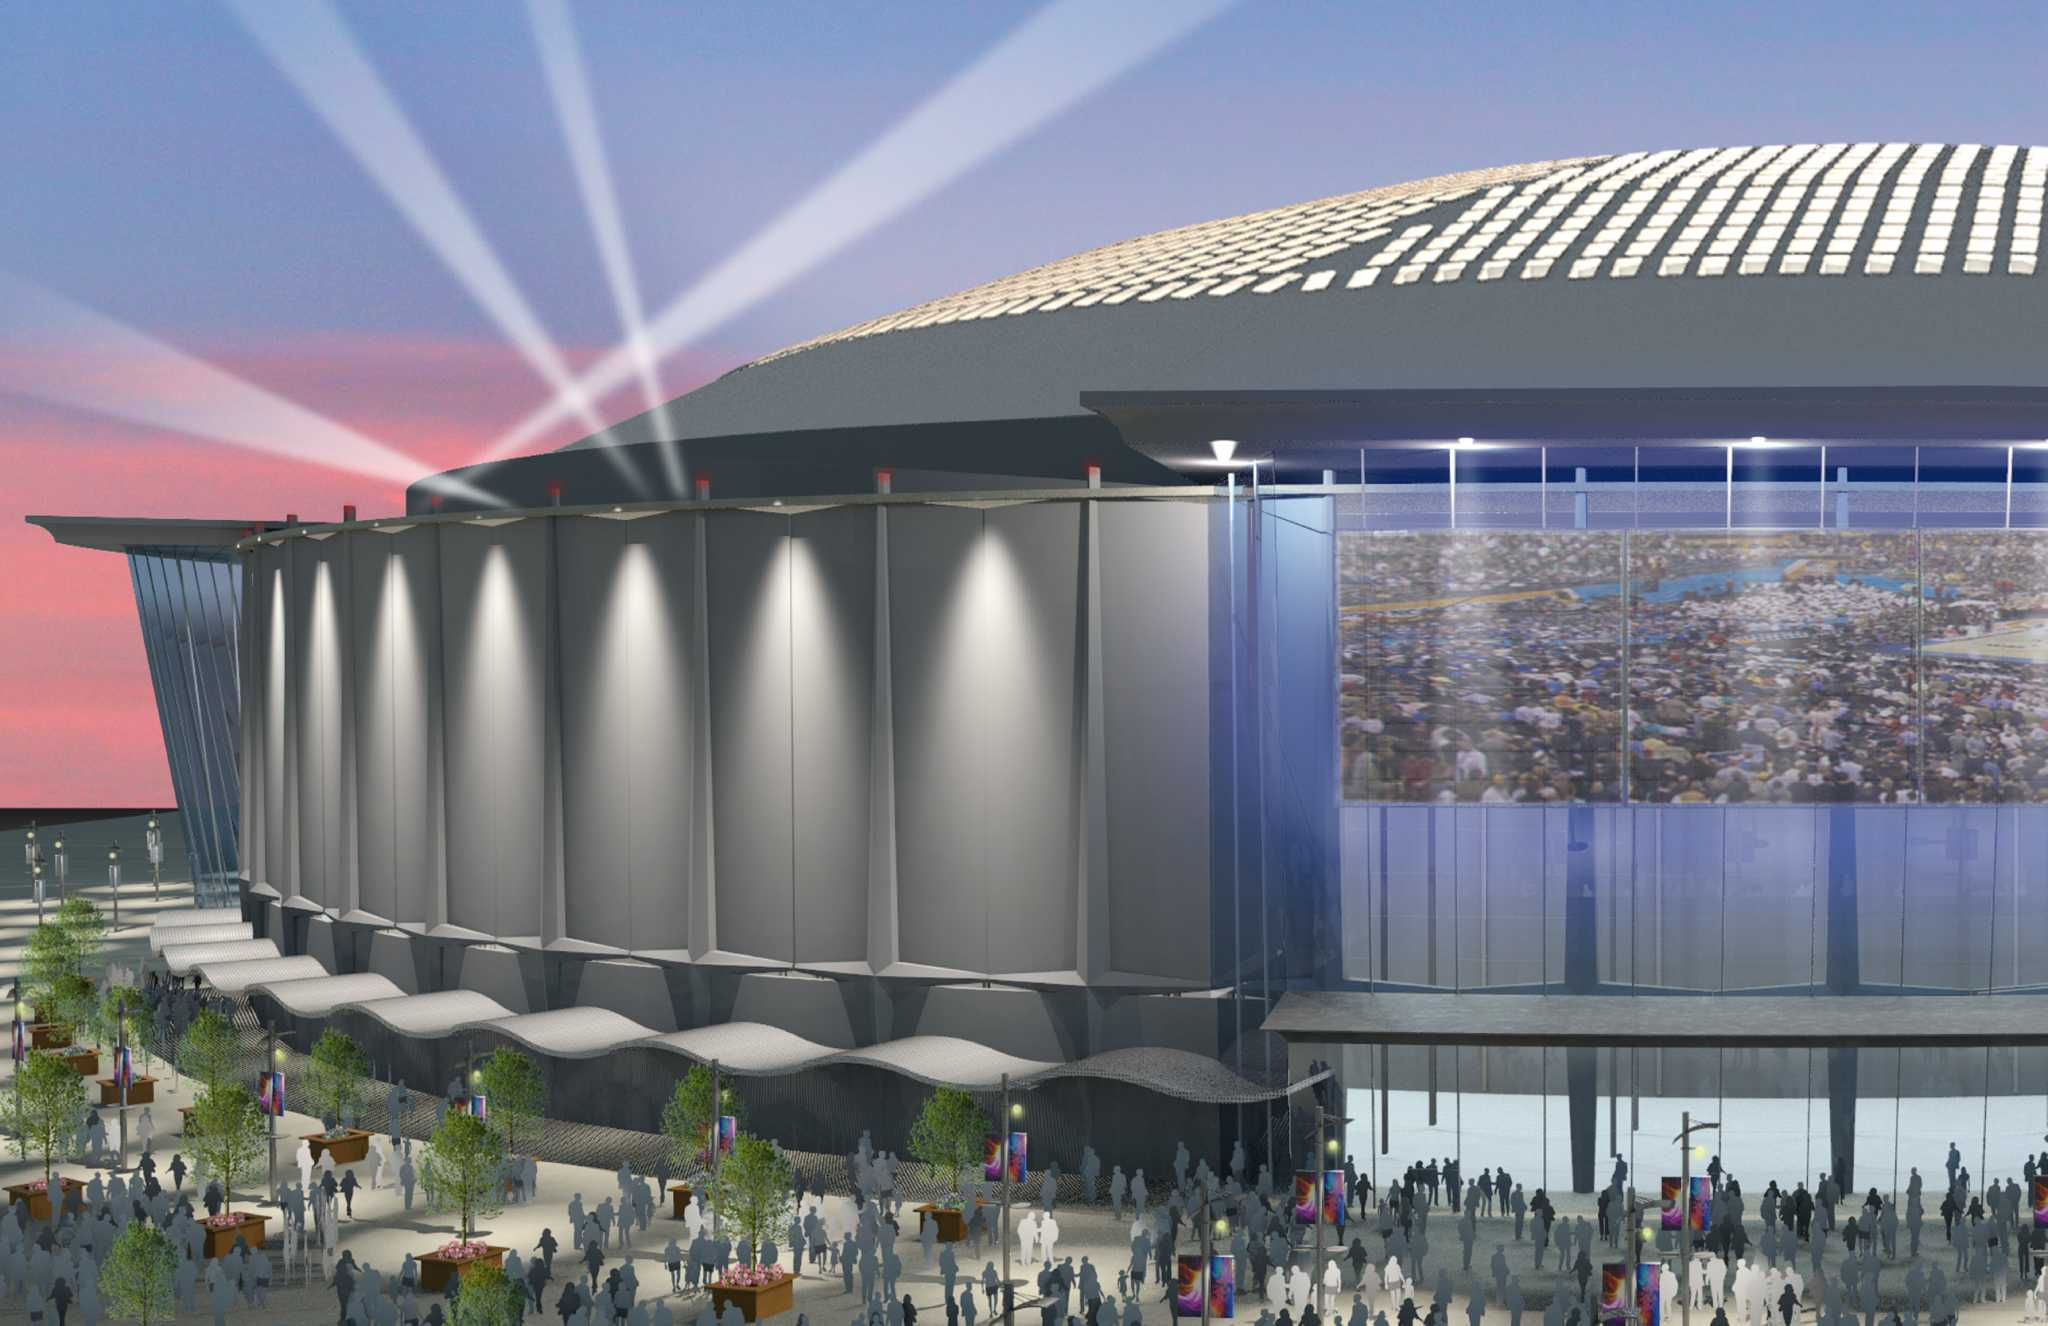 houston dome project Concerns about the houston dome project posted on march 6, 2010 march 8, 2010 by amanda roverfield the city of houston may have just found a technologically advanced solution to harsh weather conditions such as hurricane, cyclone and extreme heat.